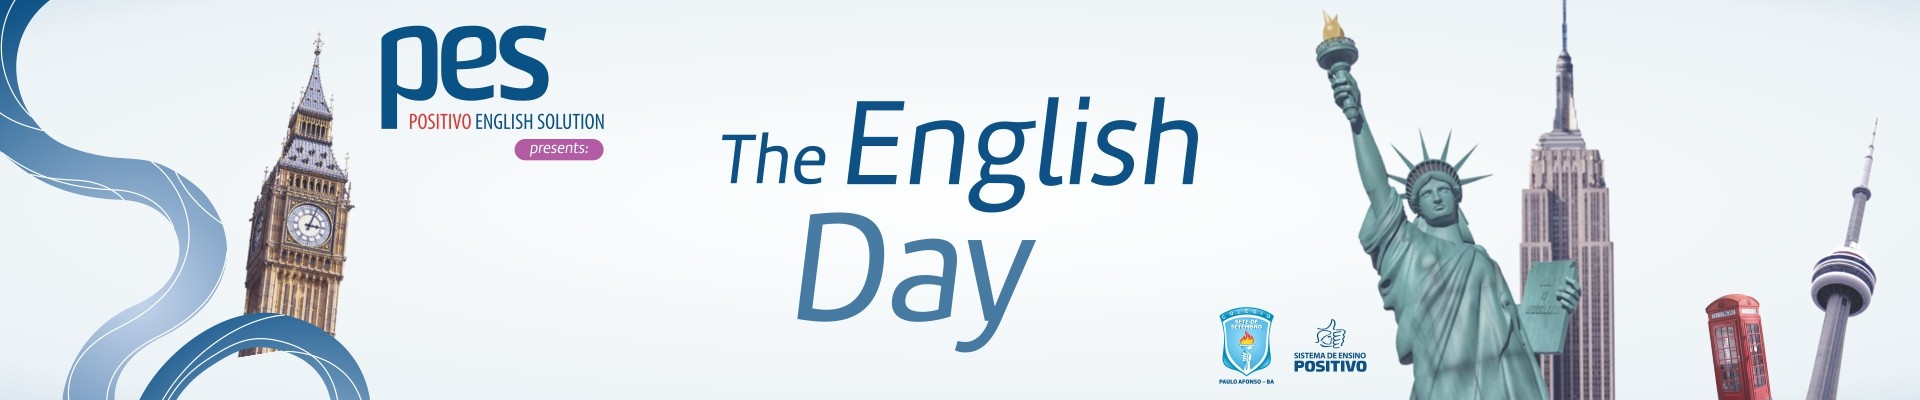 THE ENGLISH DAY